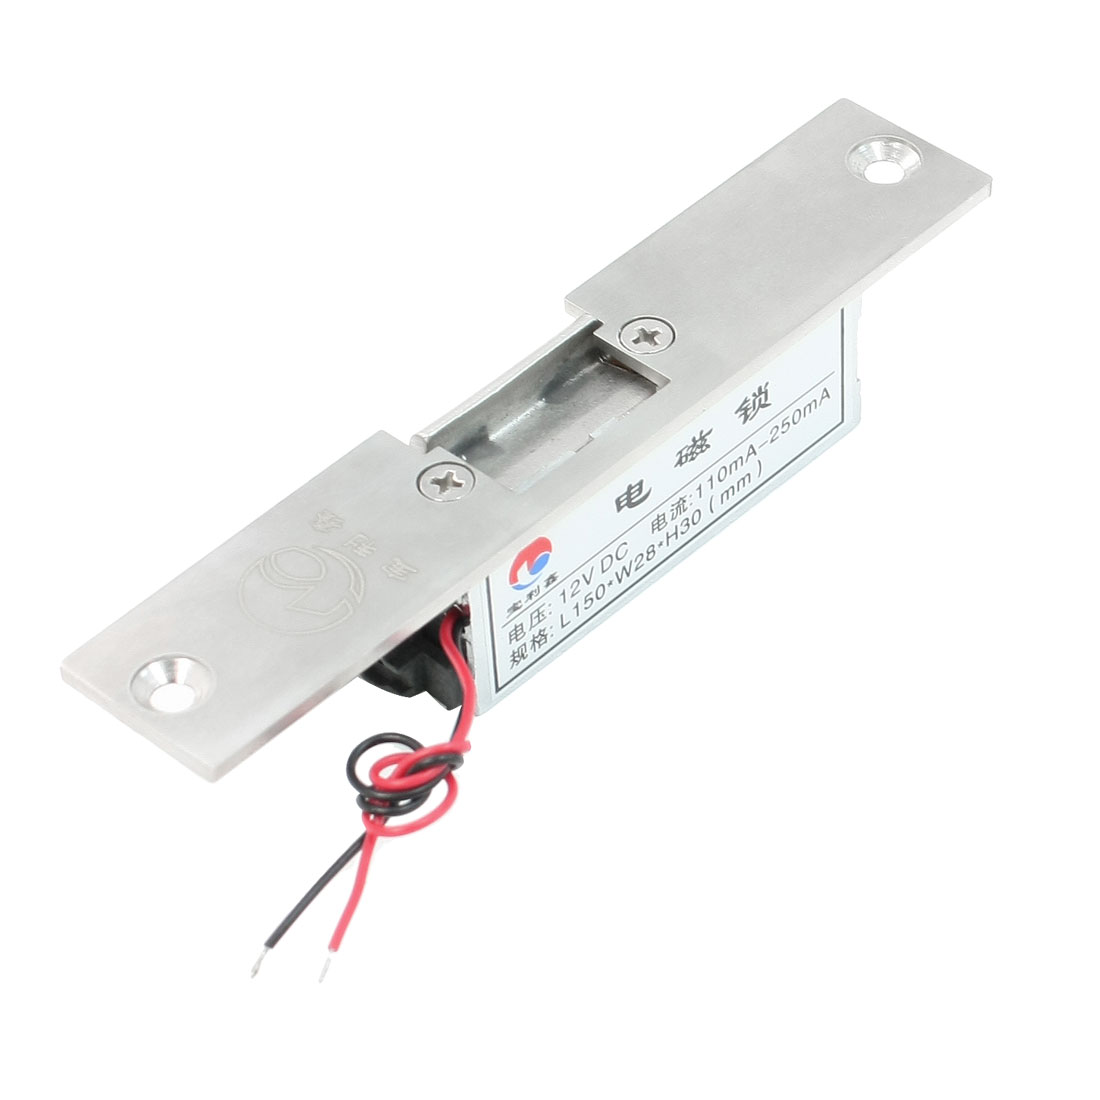 DC 12V 110mA-250mA Indoor Switchgear Electromagnetic Lock w 2 Wires